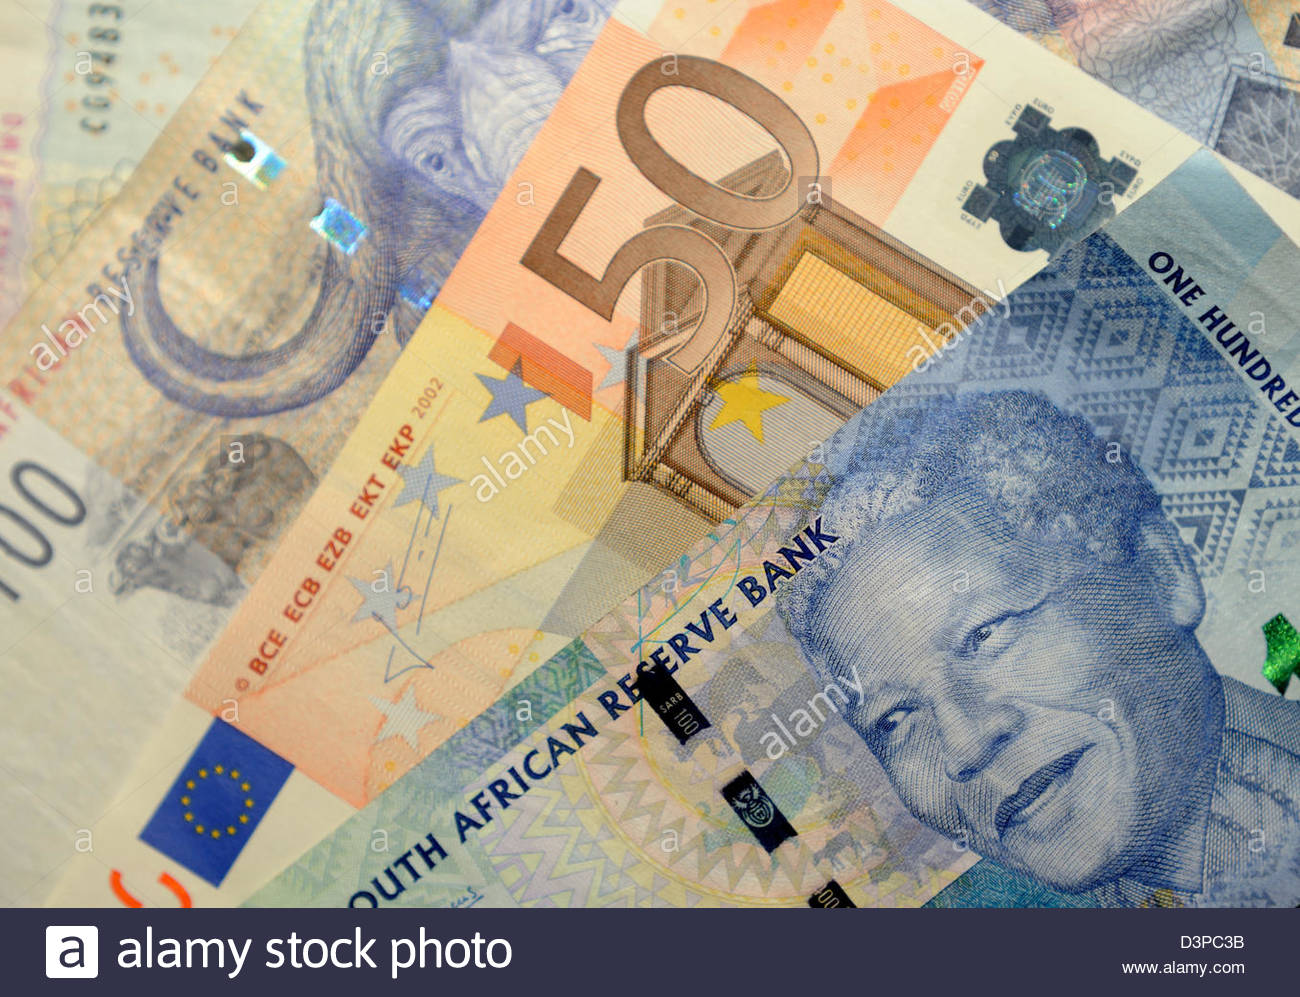 South African Rand and Euro notes - Stock Image